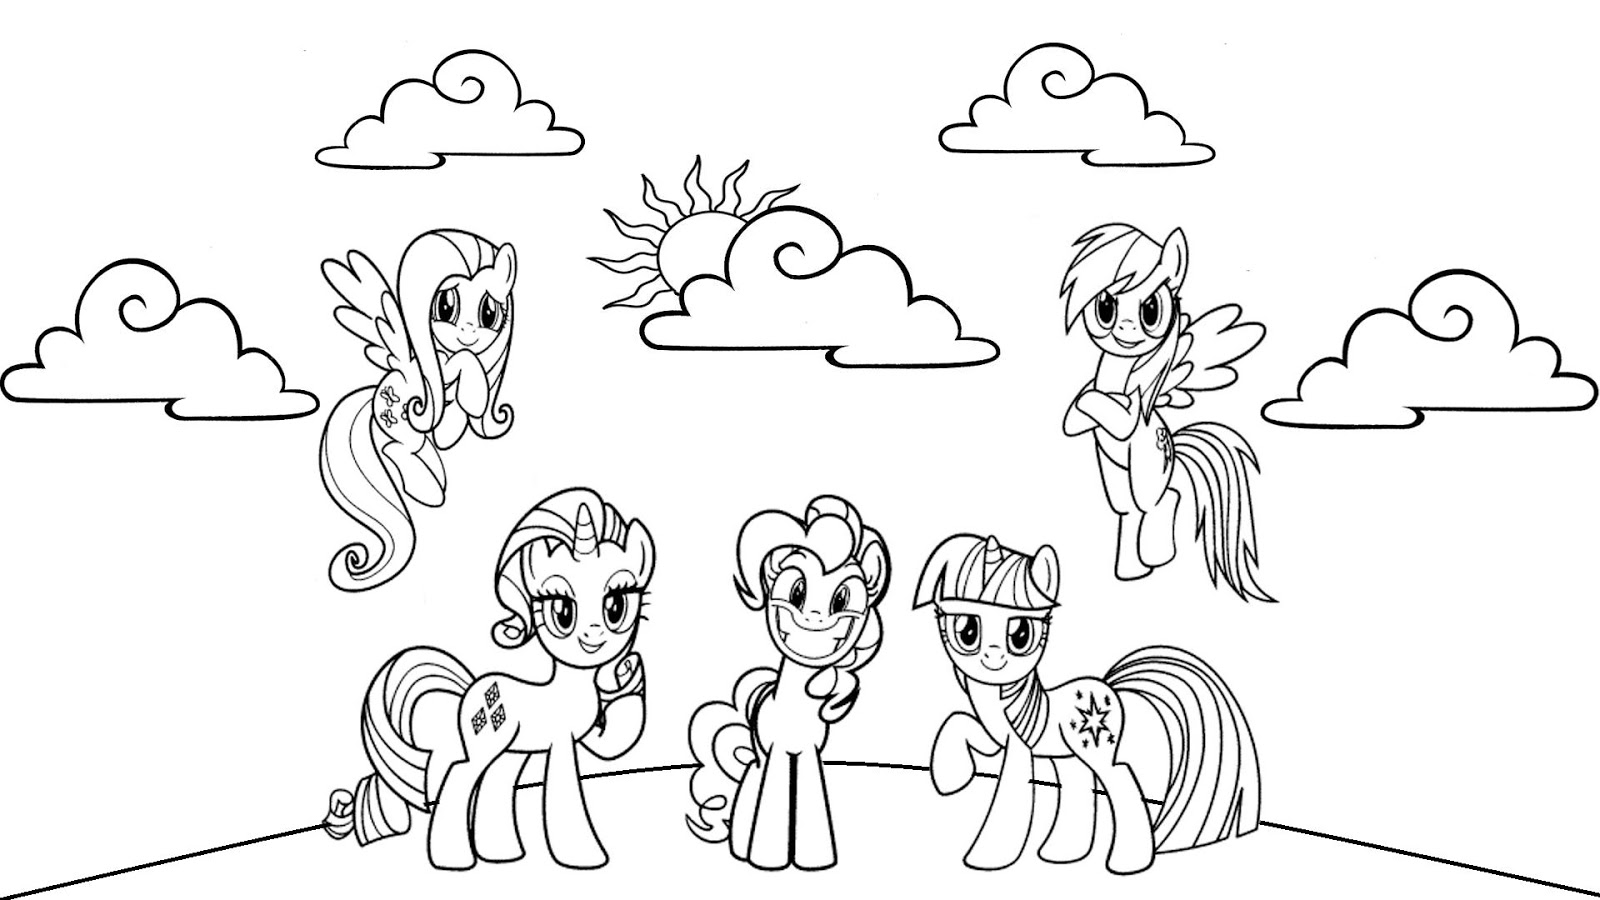 my little pony friendship is magic coloring page my little pony friendship is magic coloring pages at pony my magic little page coloring is friendship